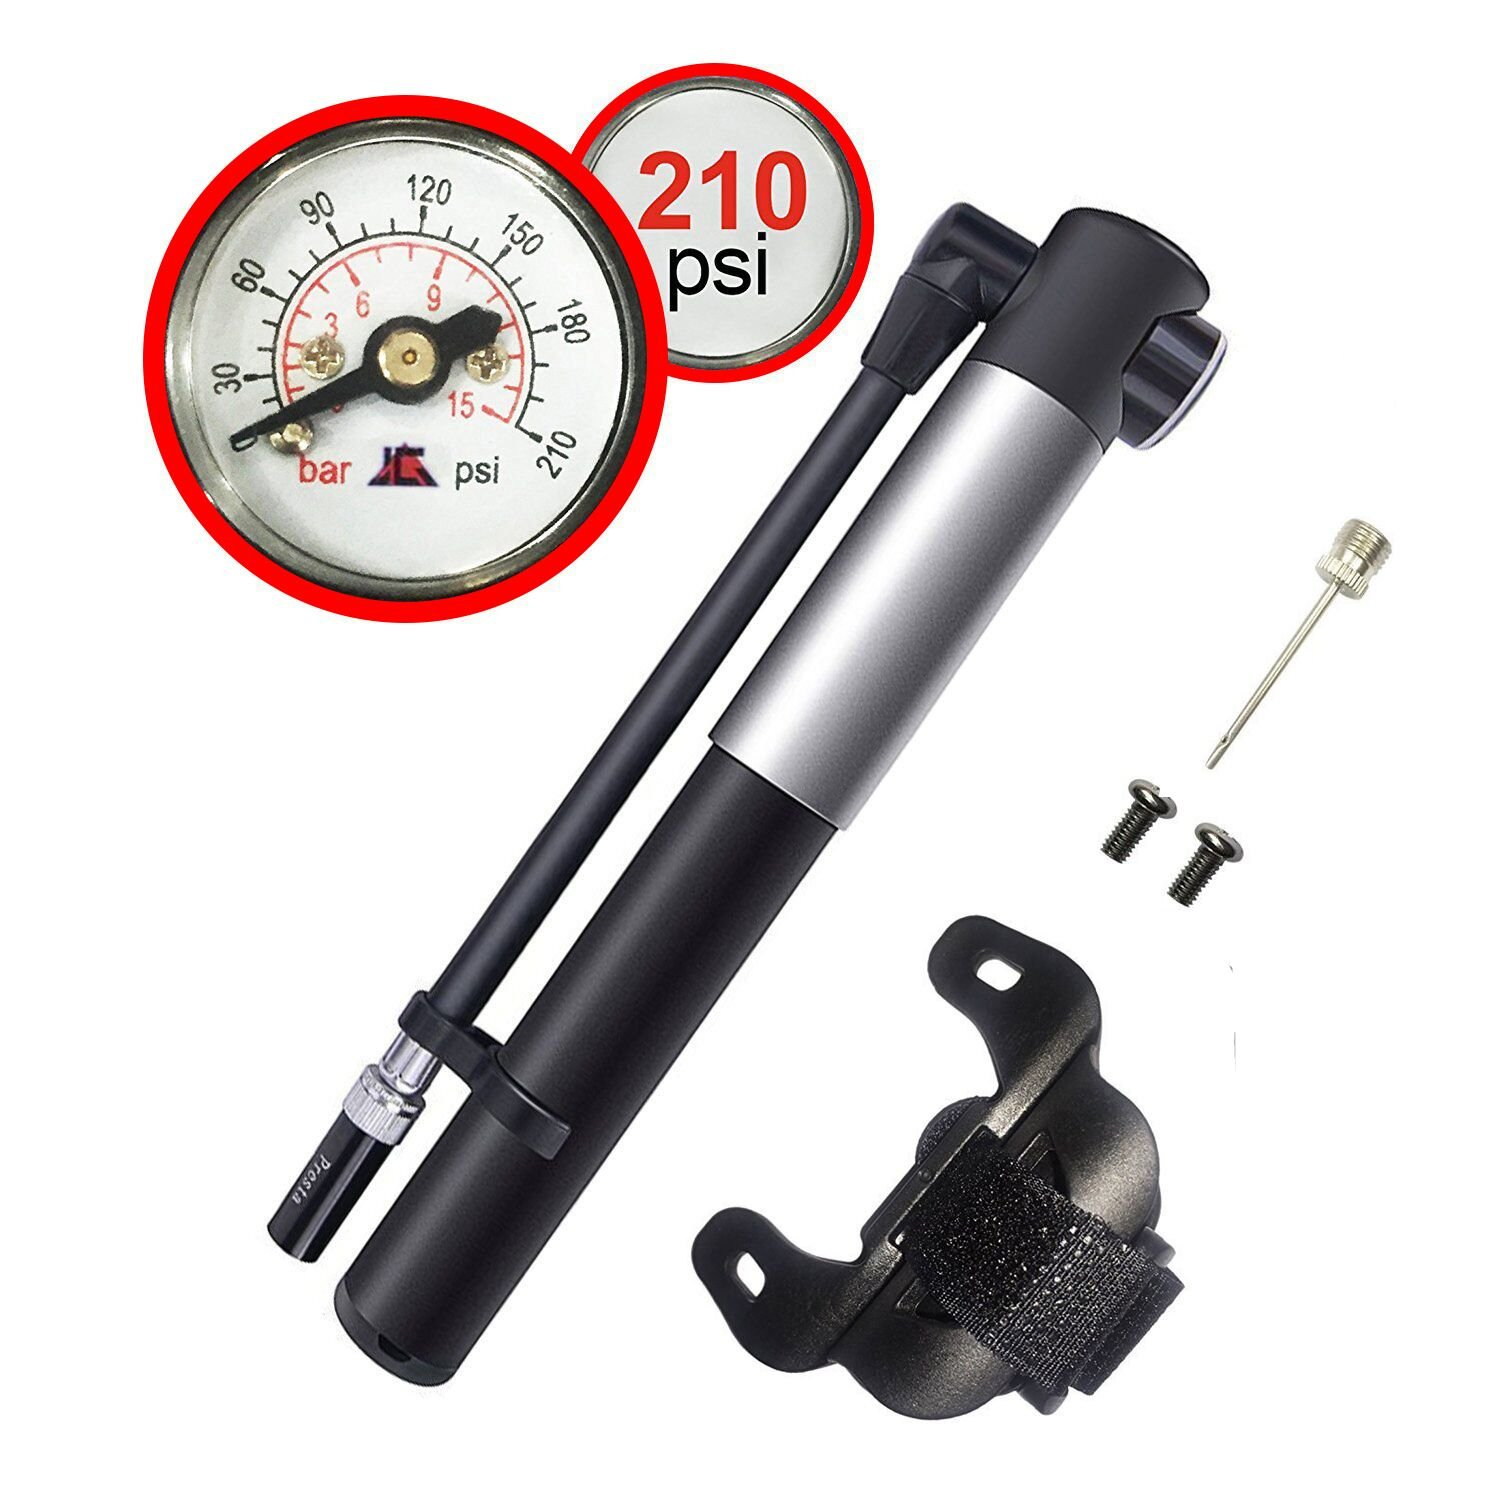 Mini Bike Pump Gauge,Presta & Schrader,210PSI,Flexible Hose,Mini Potable Frame Pump with Aluminum Alloy Body,for Road, Mountain or BMX Bicycles, Balls